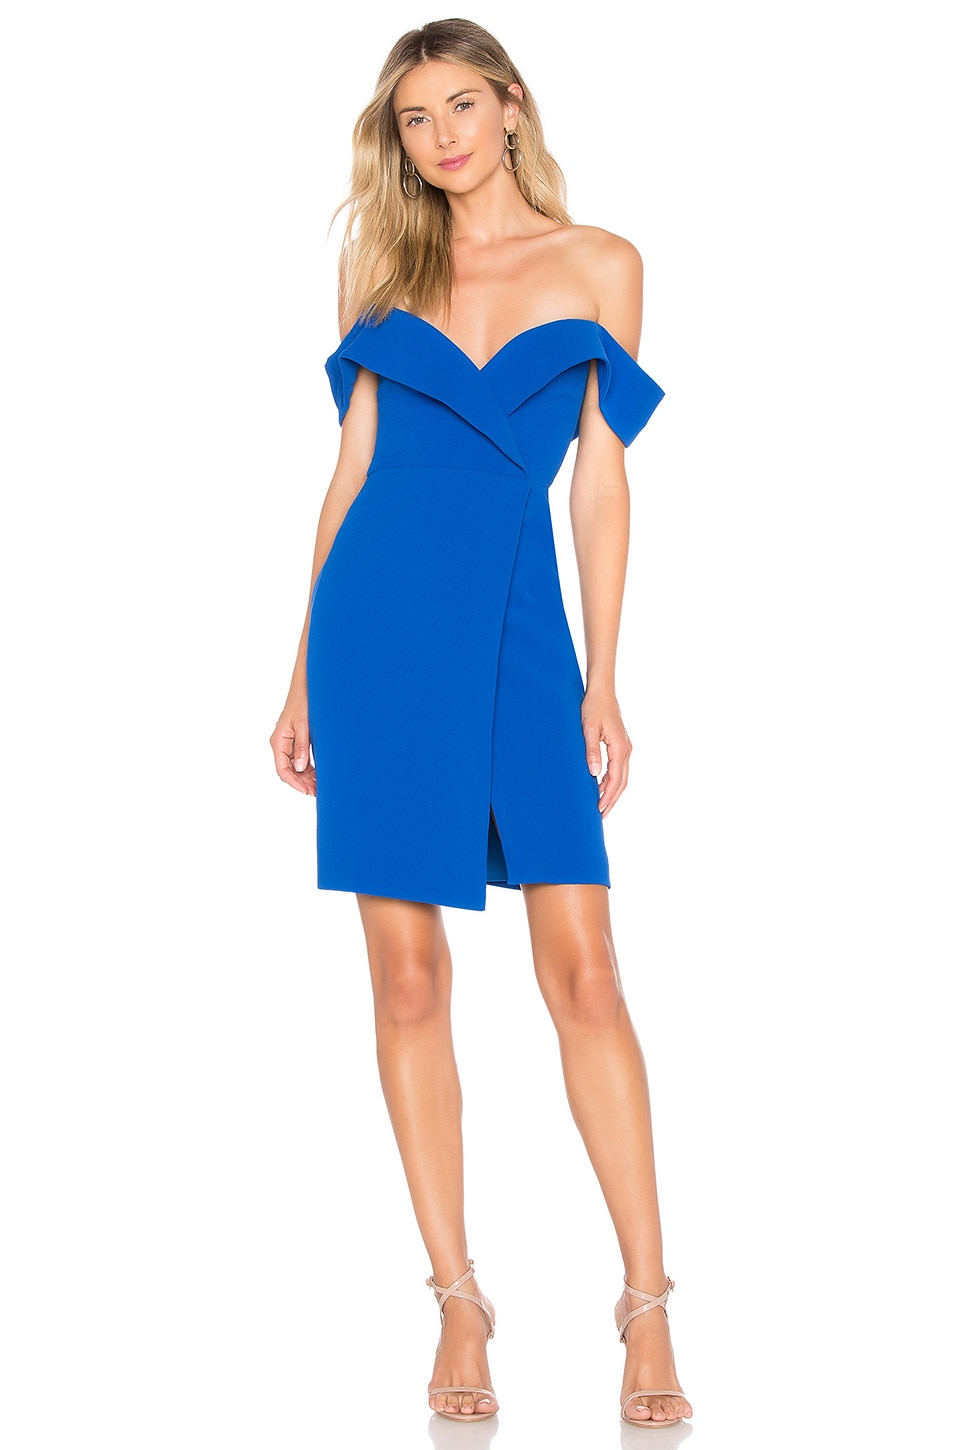 Chrissy Teigen x REVOLVE Thea Mini Dress in Cobalt Blue